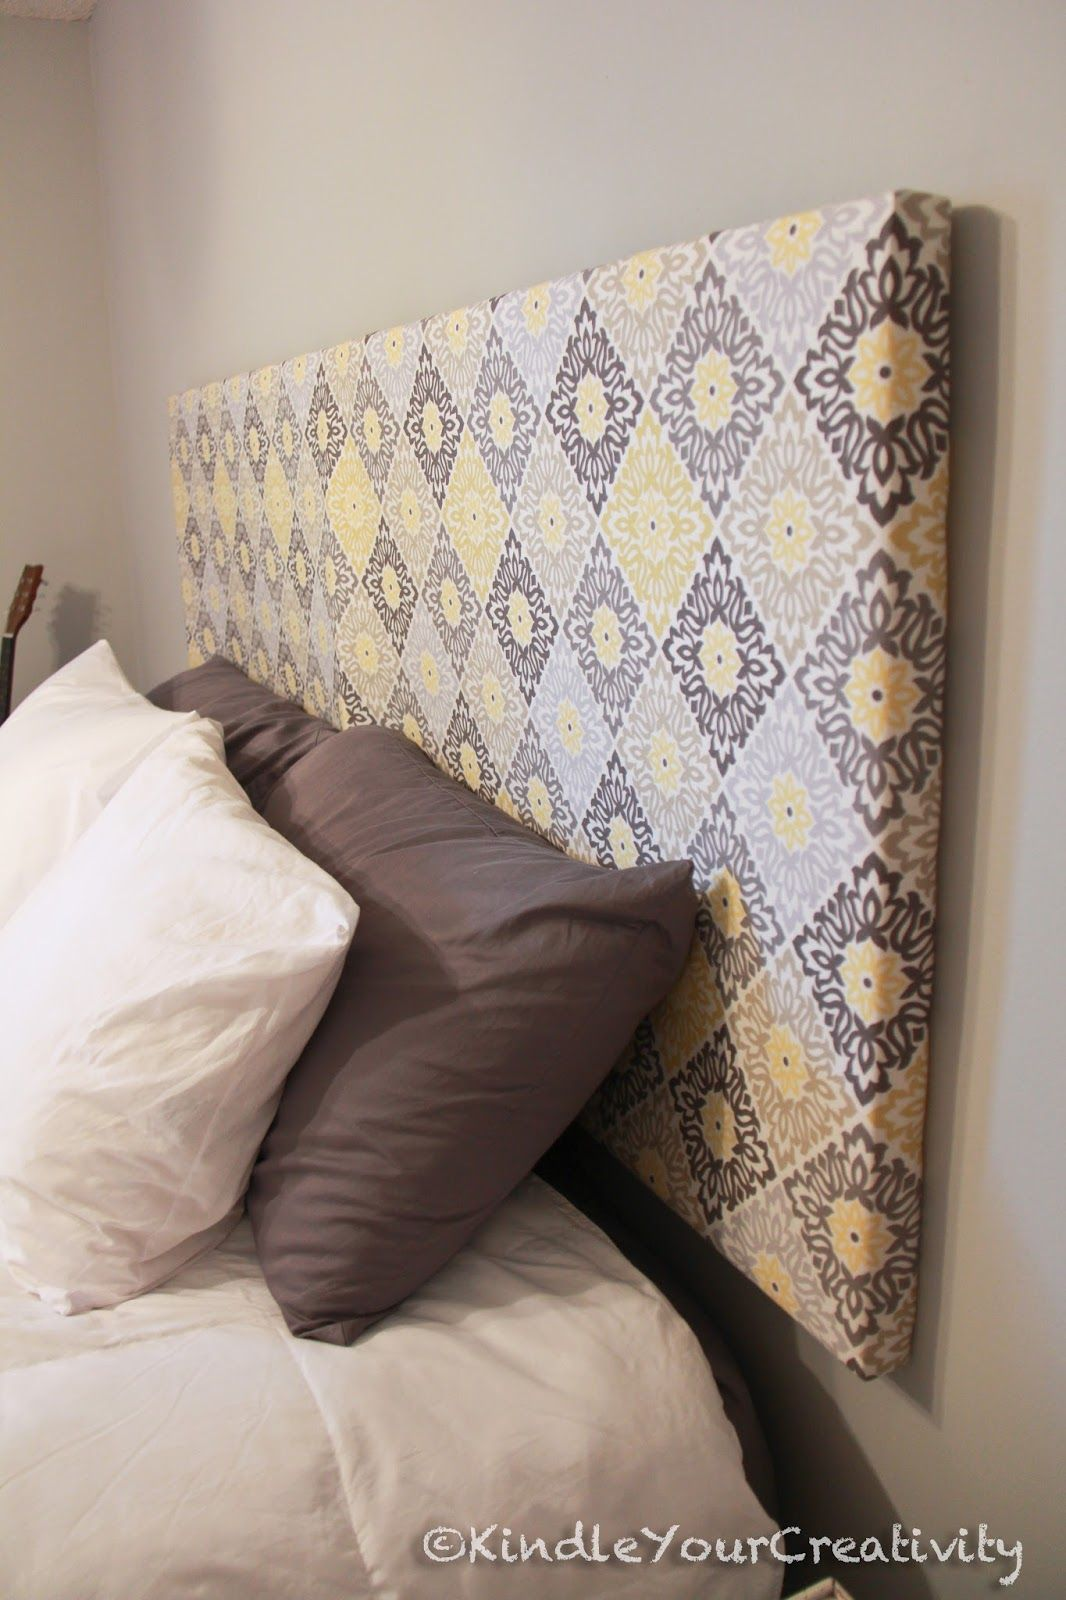 Pin by Kassidy Dulworth on My Dream Room in 2018   Pinterest   Diy     Kindle Your Creativity  Master Bedroom Redo   DIY Fabric Headboard Hrubec  Hrubec Hrubec Schmeltzer Schmeltzer Marshall  Love the headboard but maybe  do in